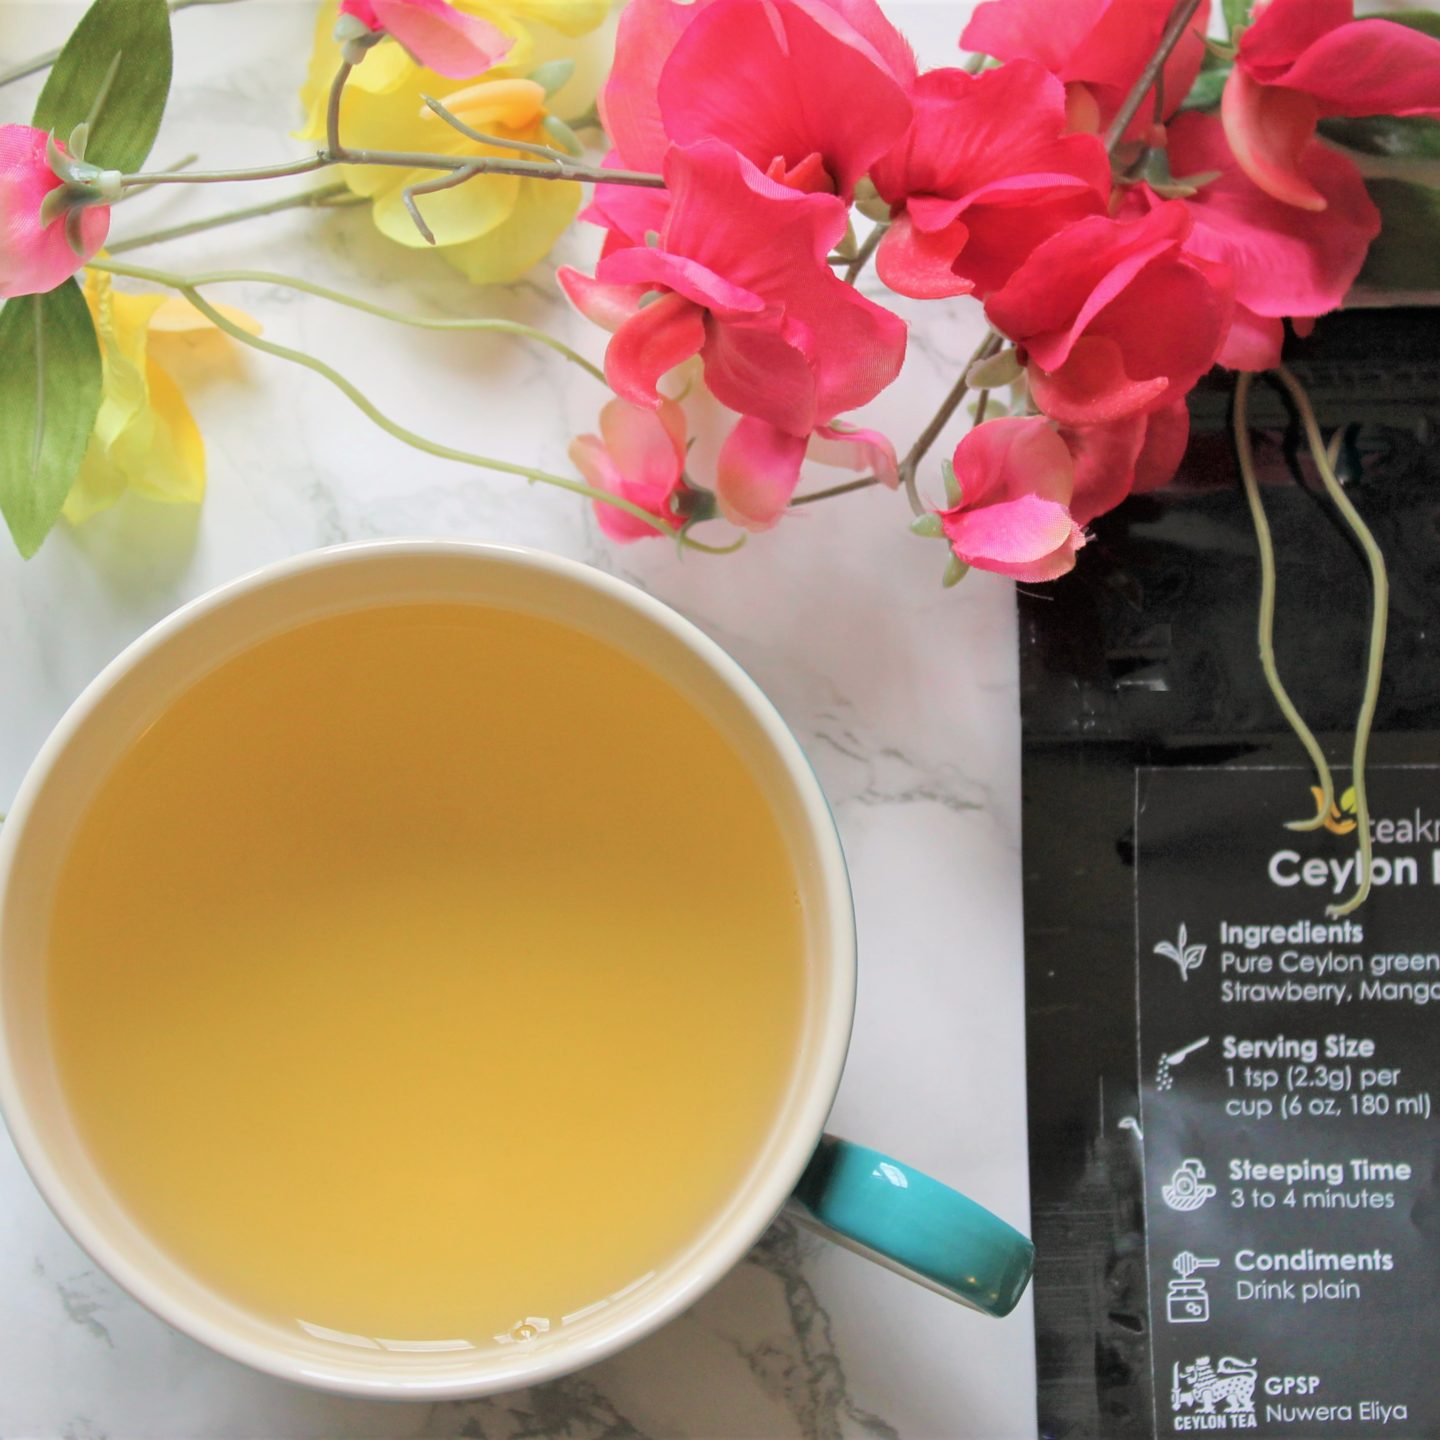 Teakruthi Ceylon Emerald Tea Review